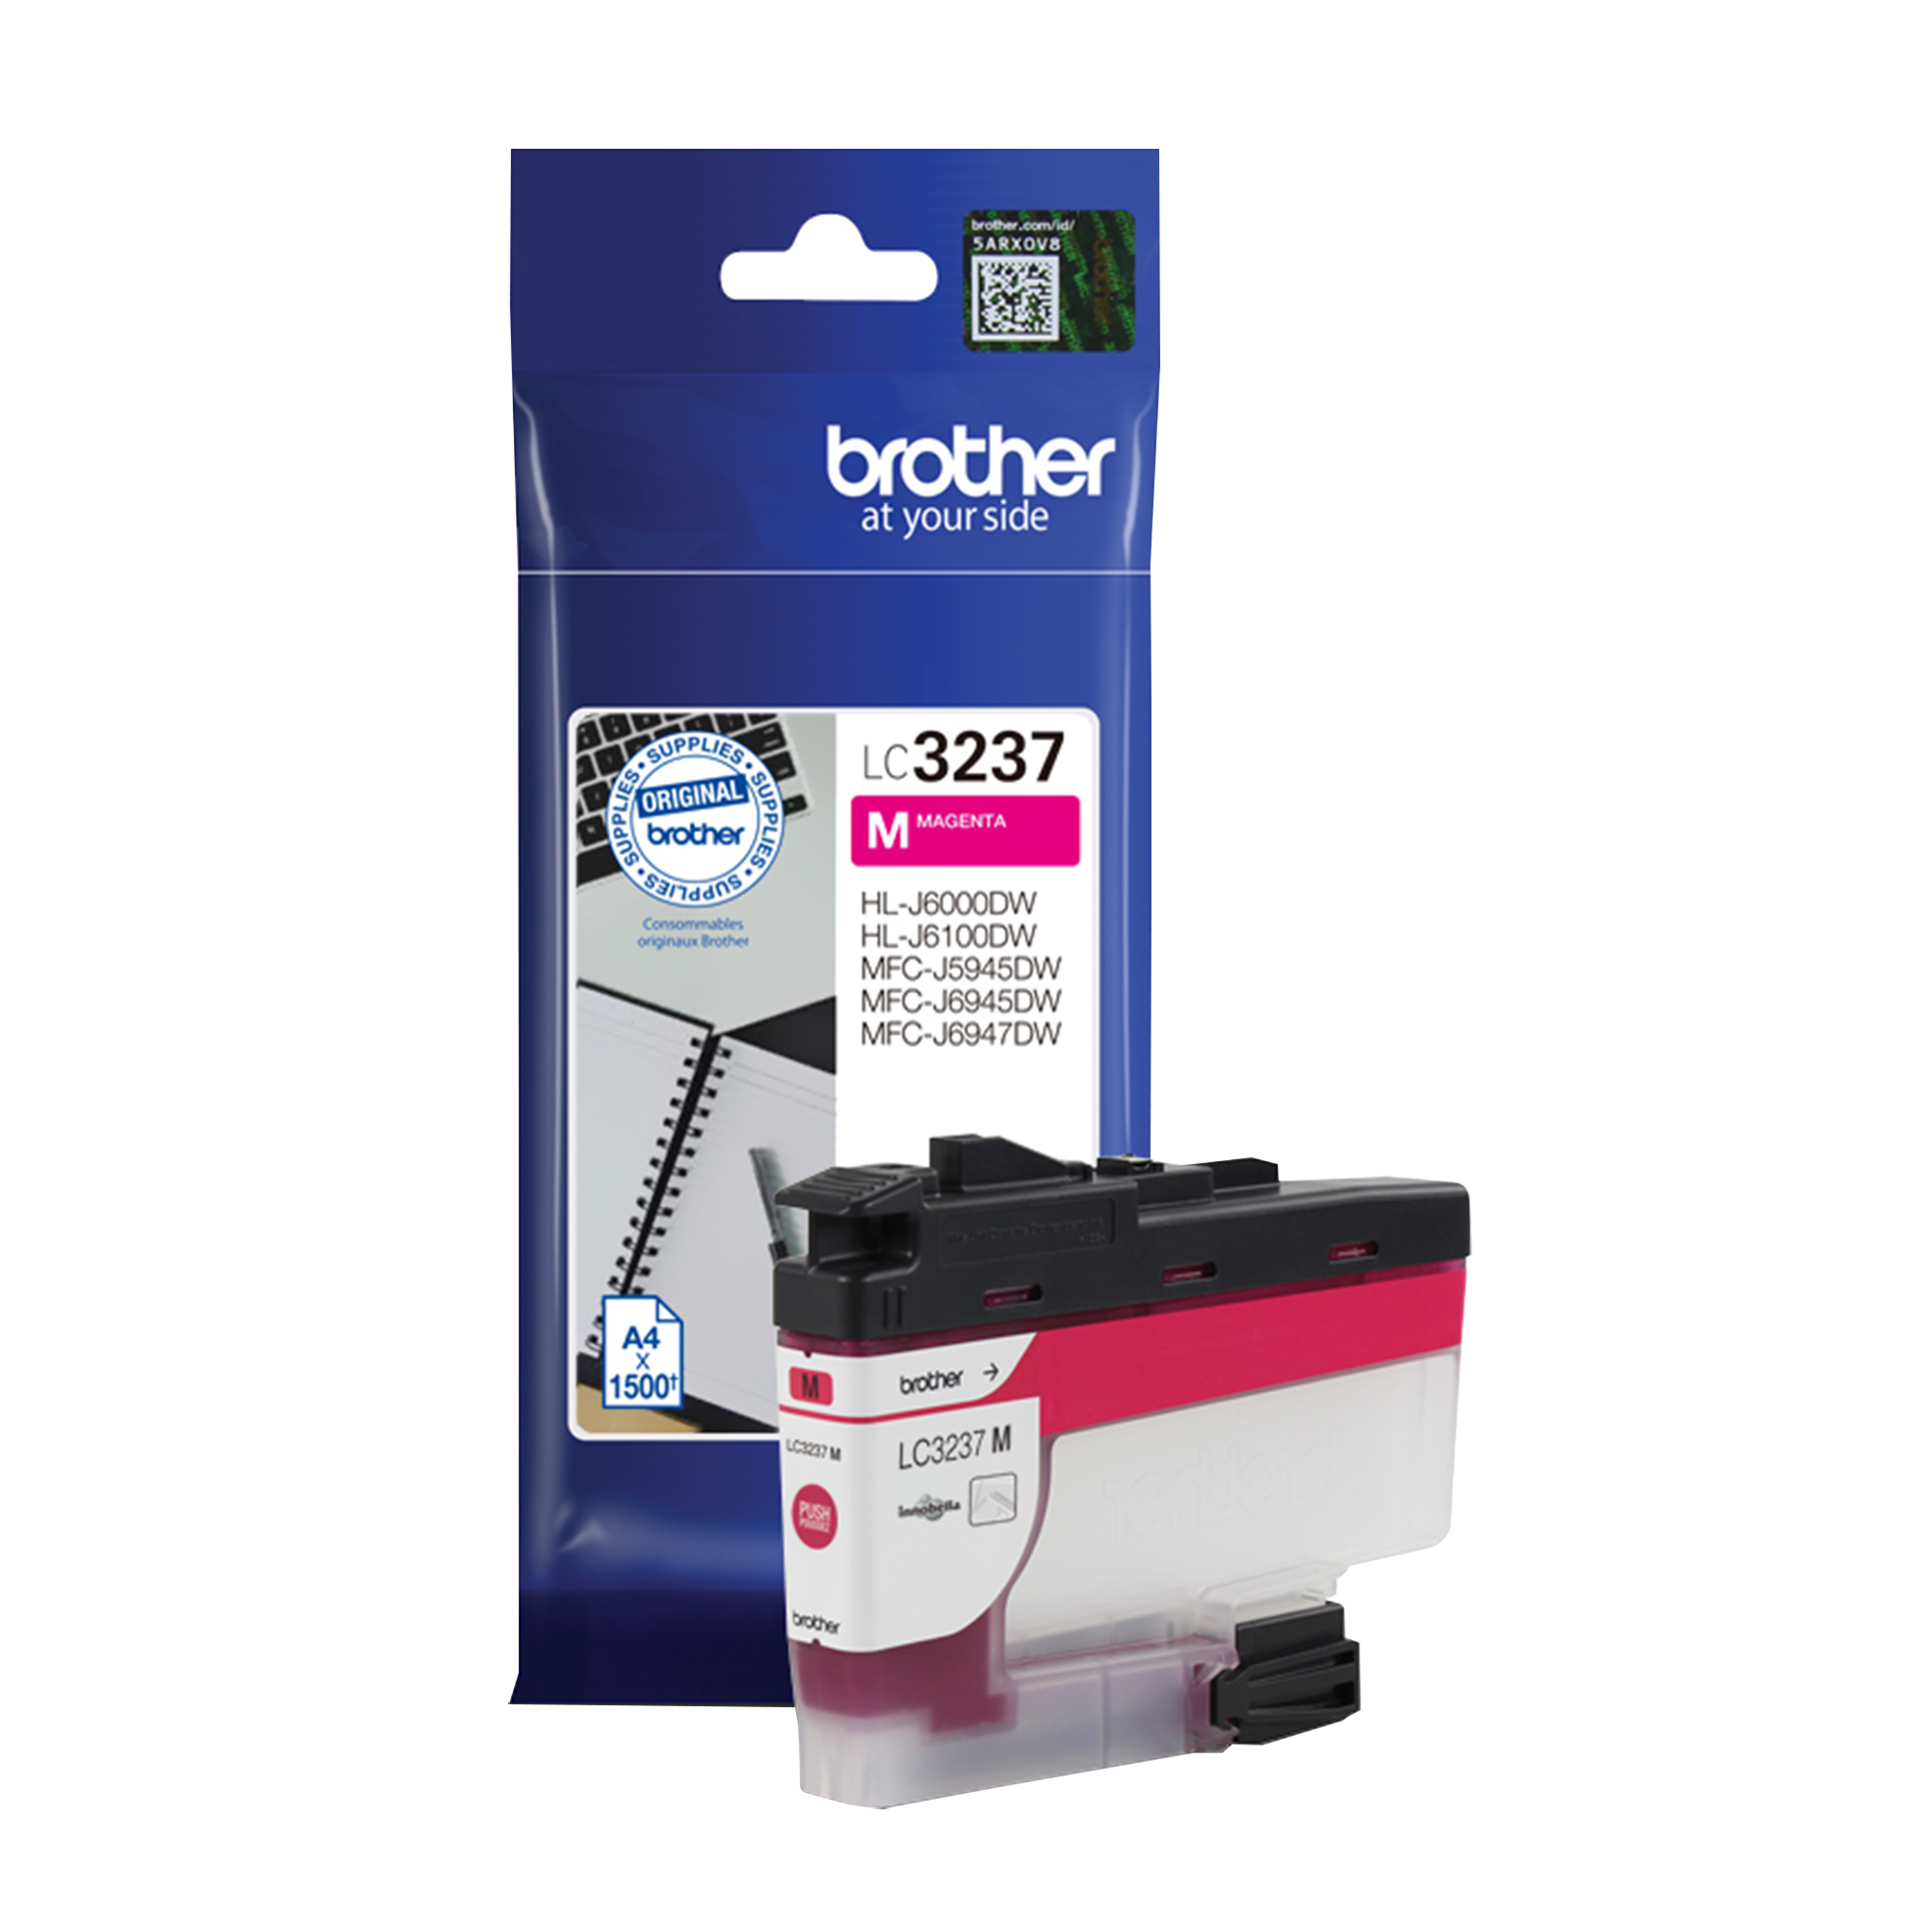 Brother LC3237M Ink Cartridge Page Life 1500pp Magenta Ref LC3237M